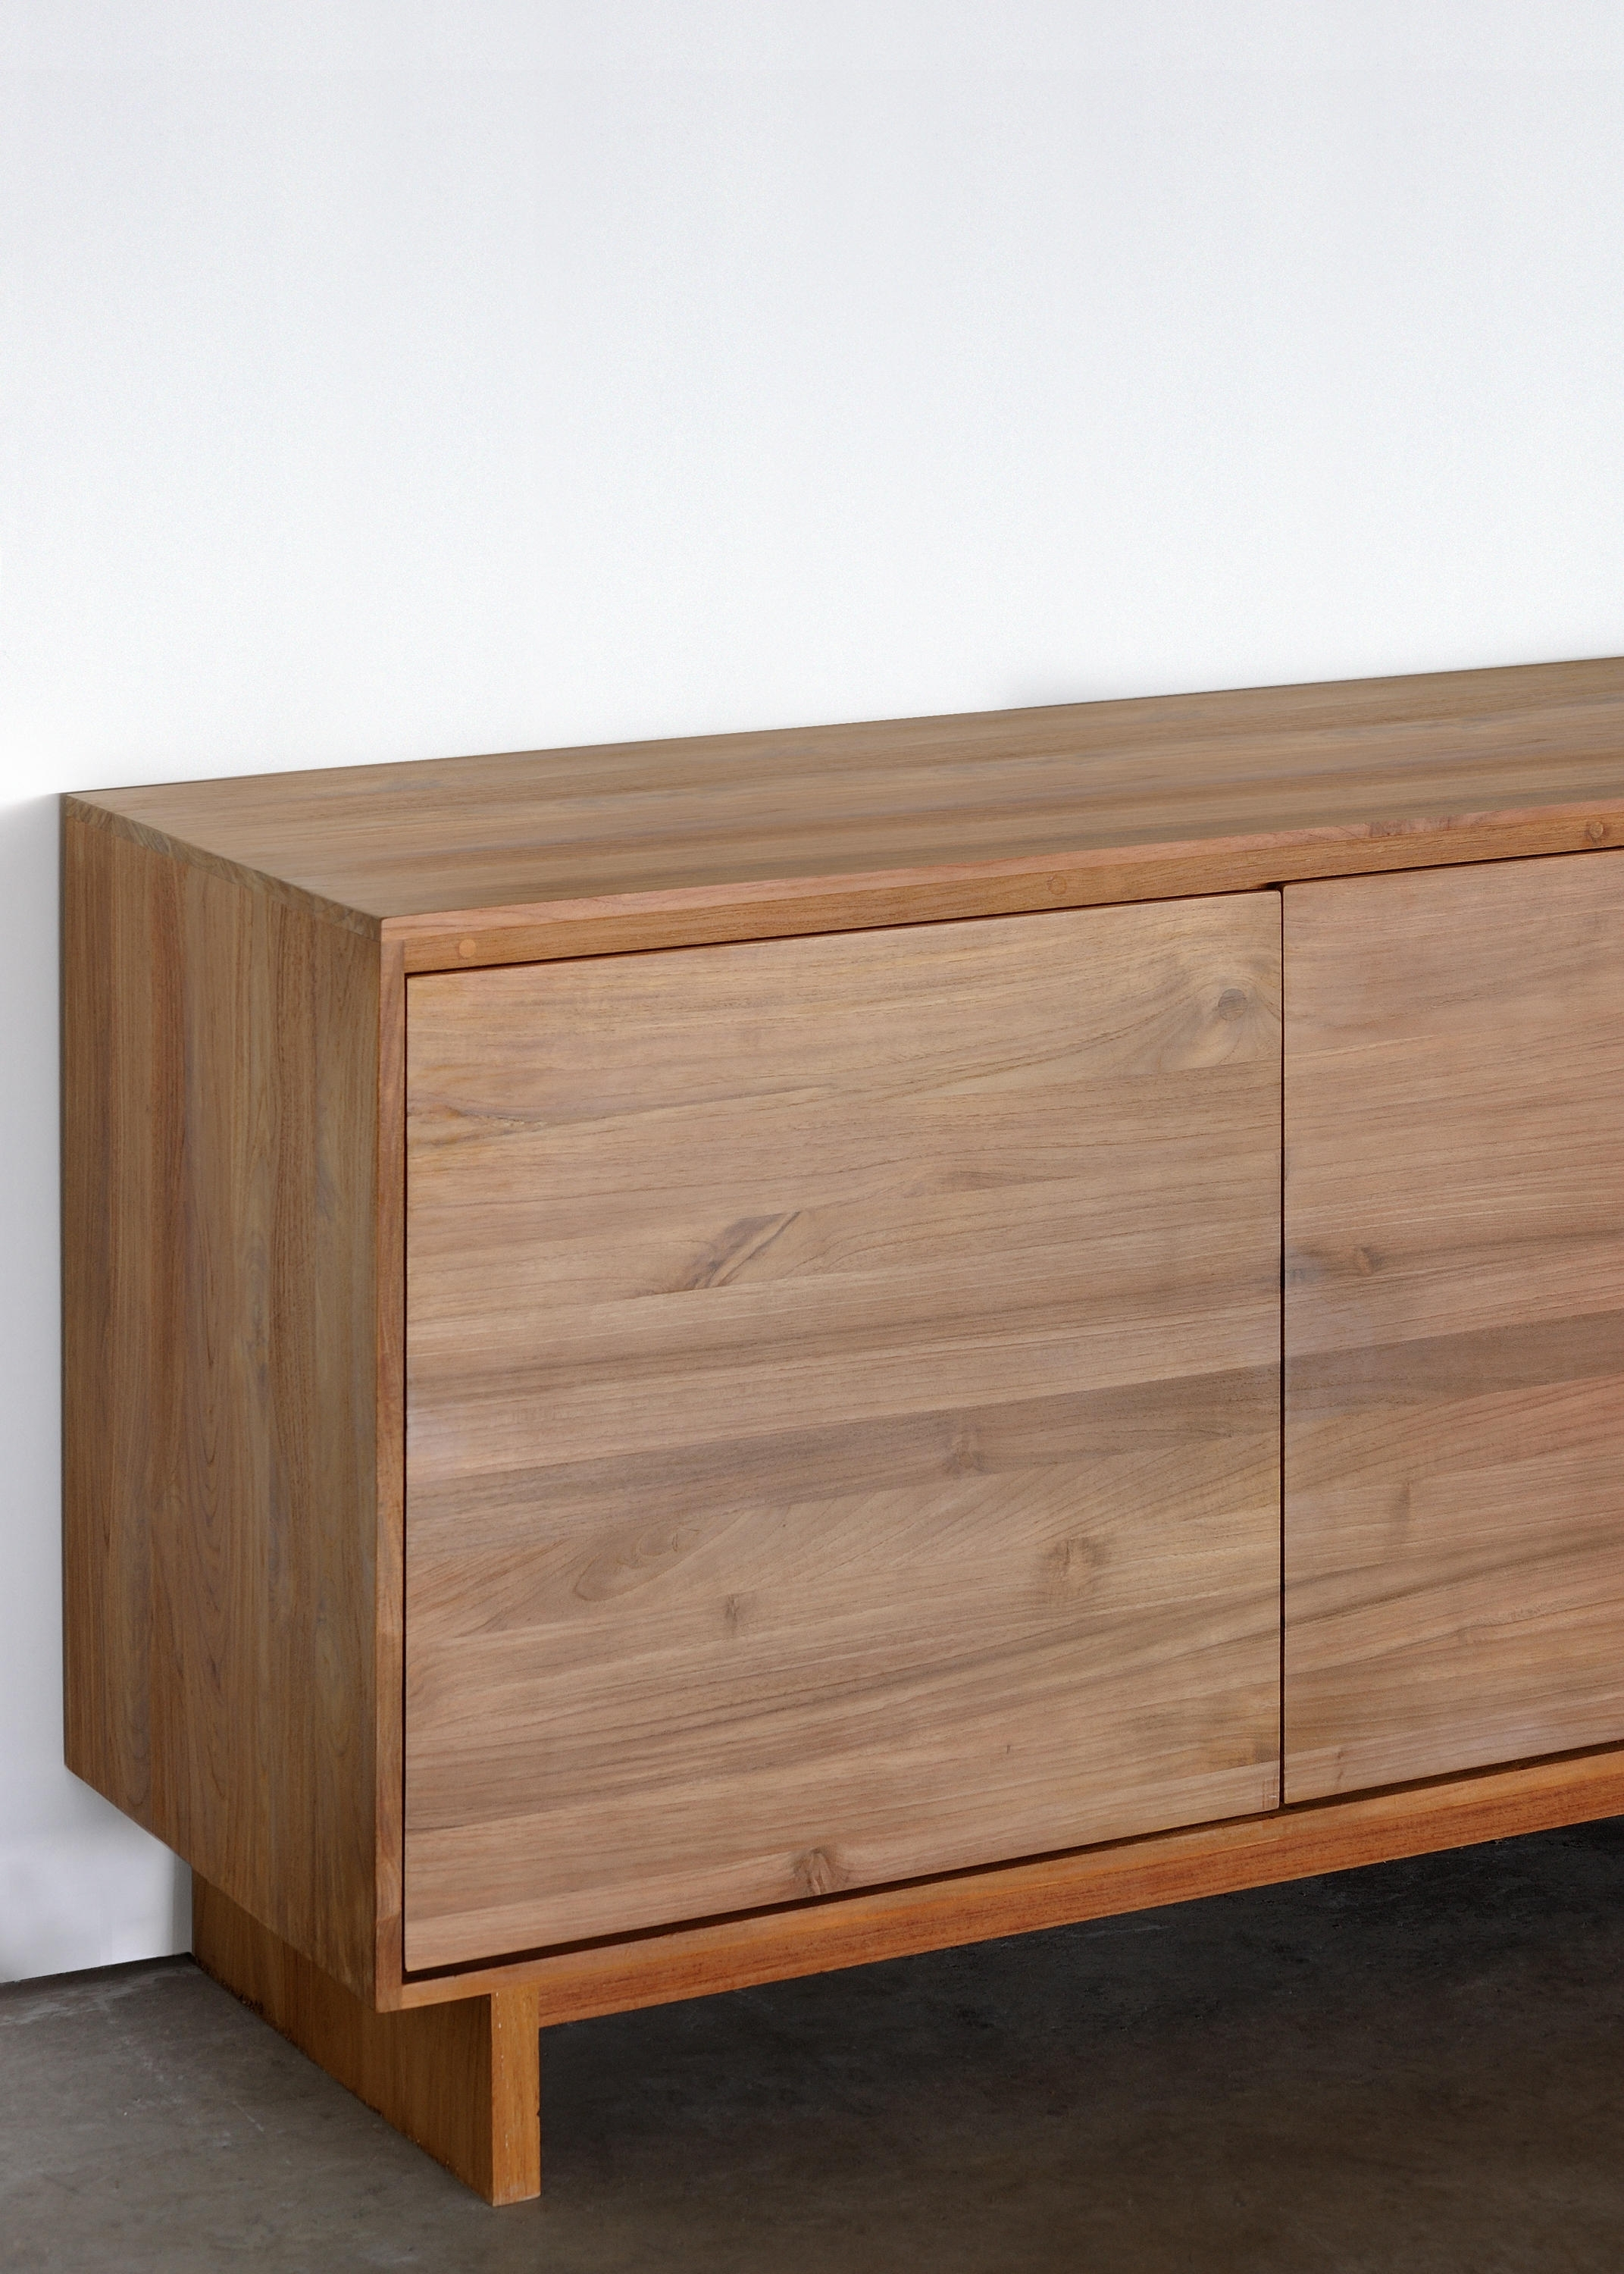 Teak Wave Sideboard - Sideboards From Ethnicraft | Architonic with Calhoun Sideboards (Image 22 of 30)